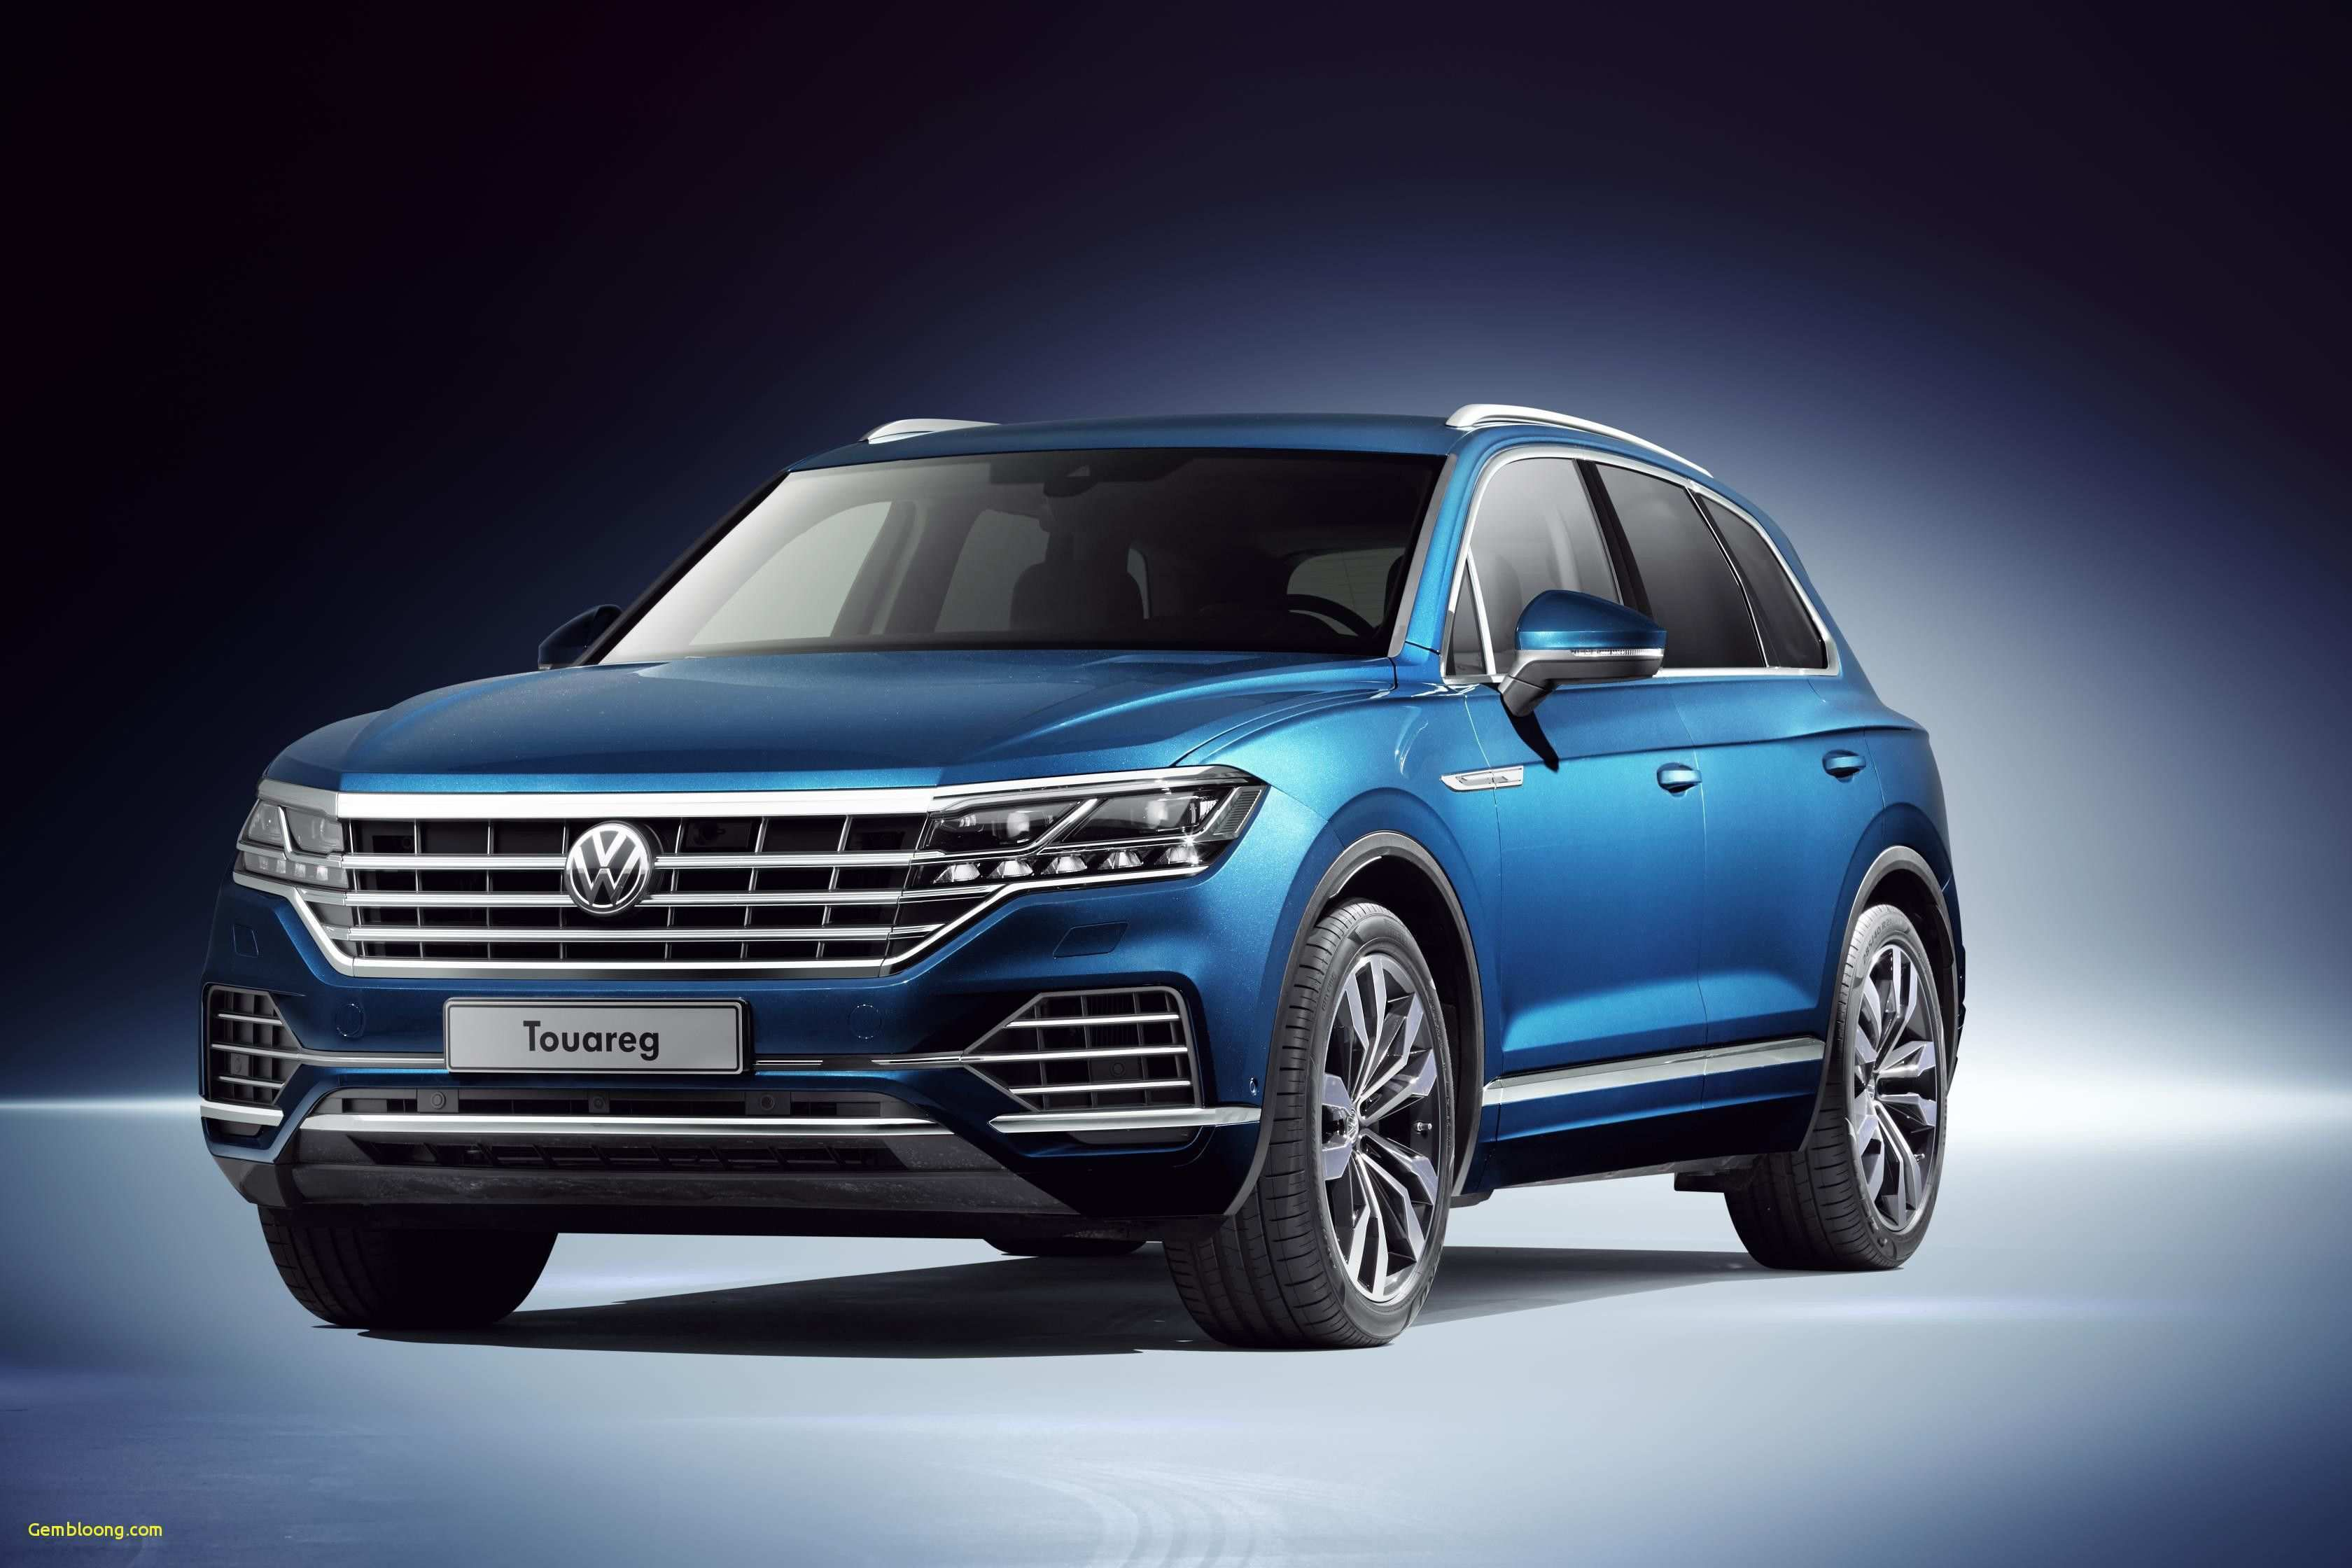 13 Best Review VW Touareg 2020 Australia Prices with VW Touareg 2020 Australia